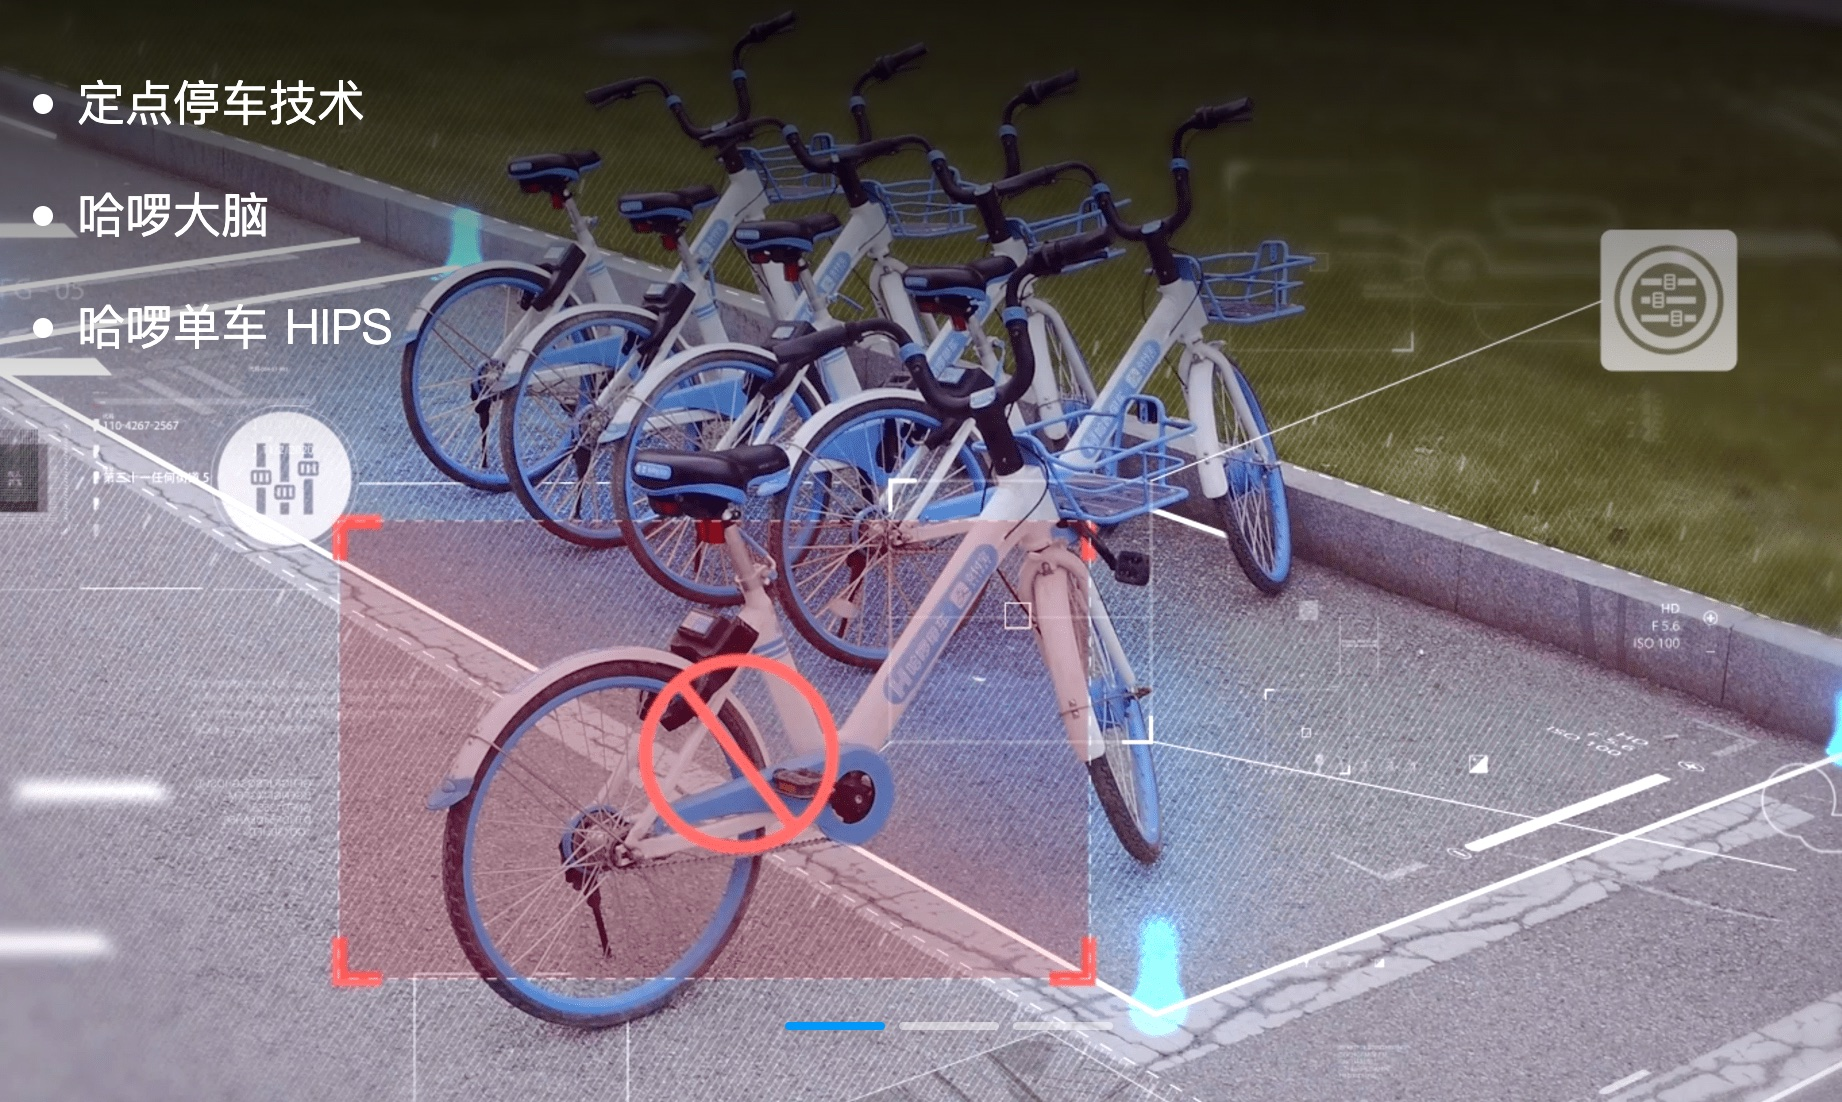 Hello Chuxing, the Chinese bicycle-sharing platform once known as Hellobike, announced that all of its bikes have been connected to the BeiDou positio